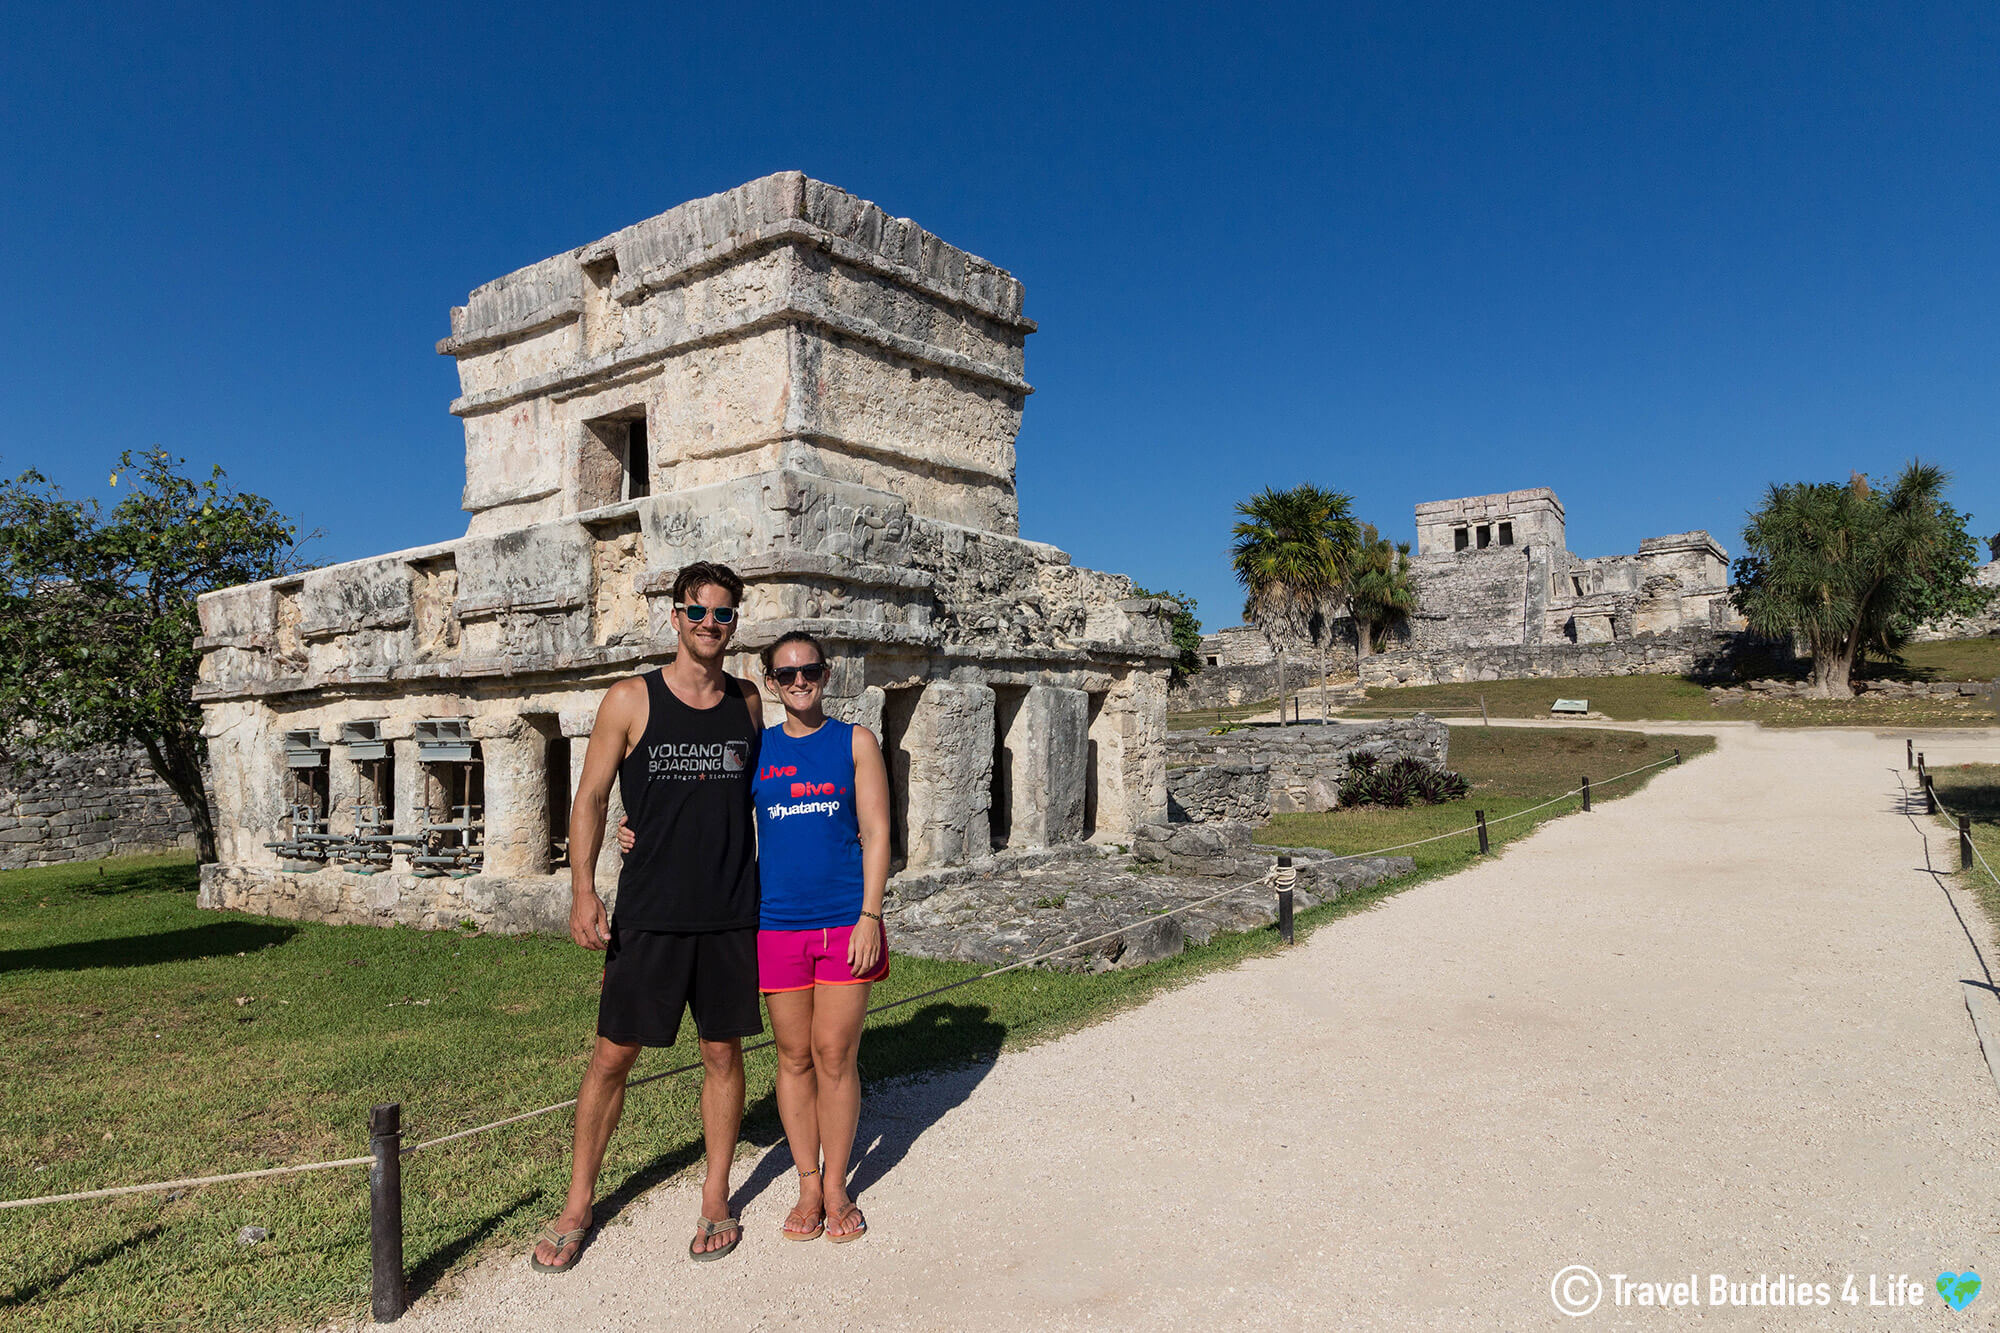 Joey And Ali Touring The Sea Side Ruins Of Tulum, Yucatan Peninsula, Mexico